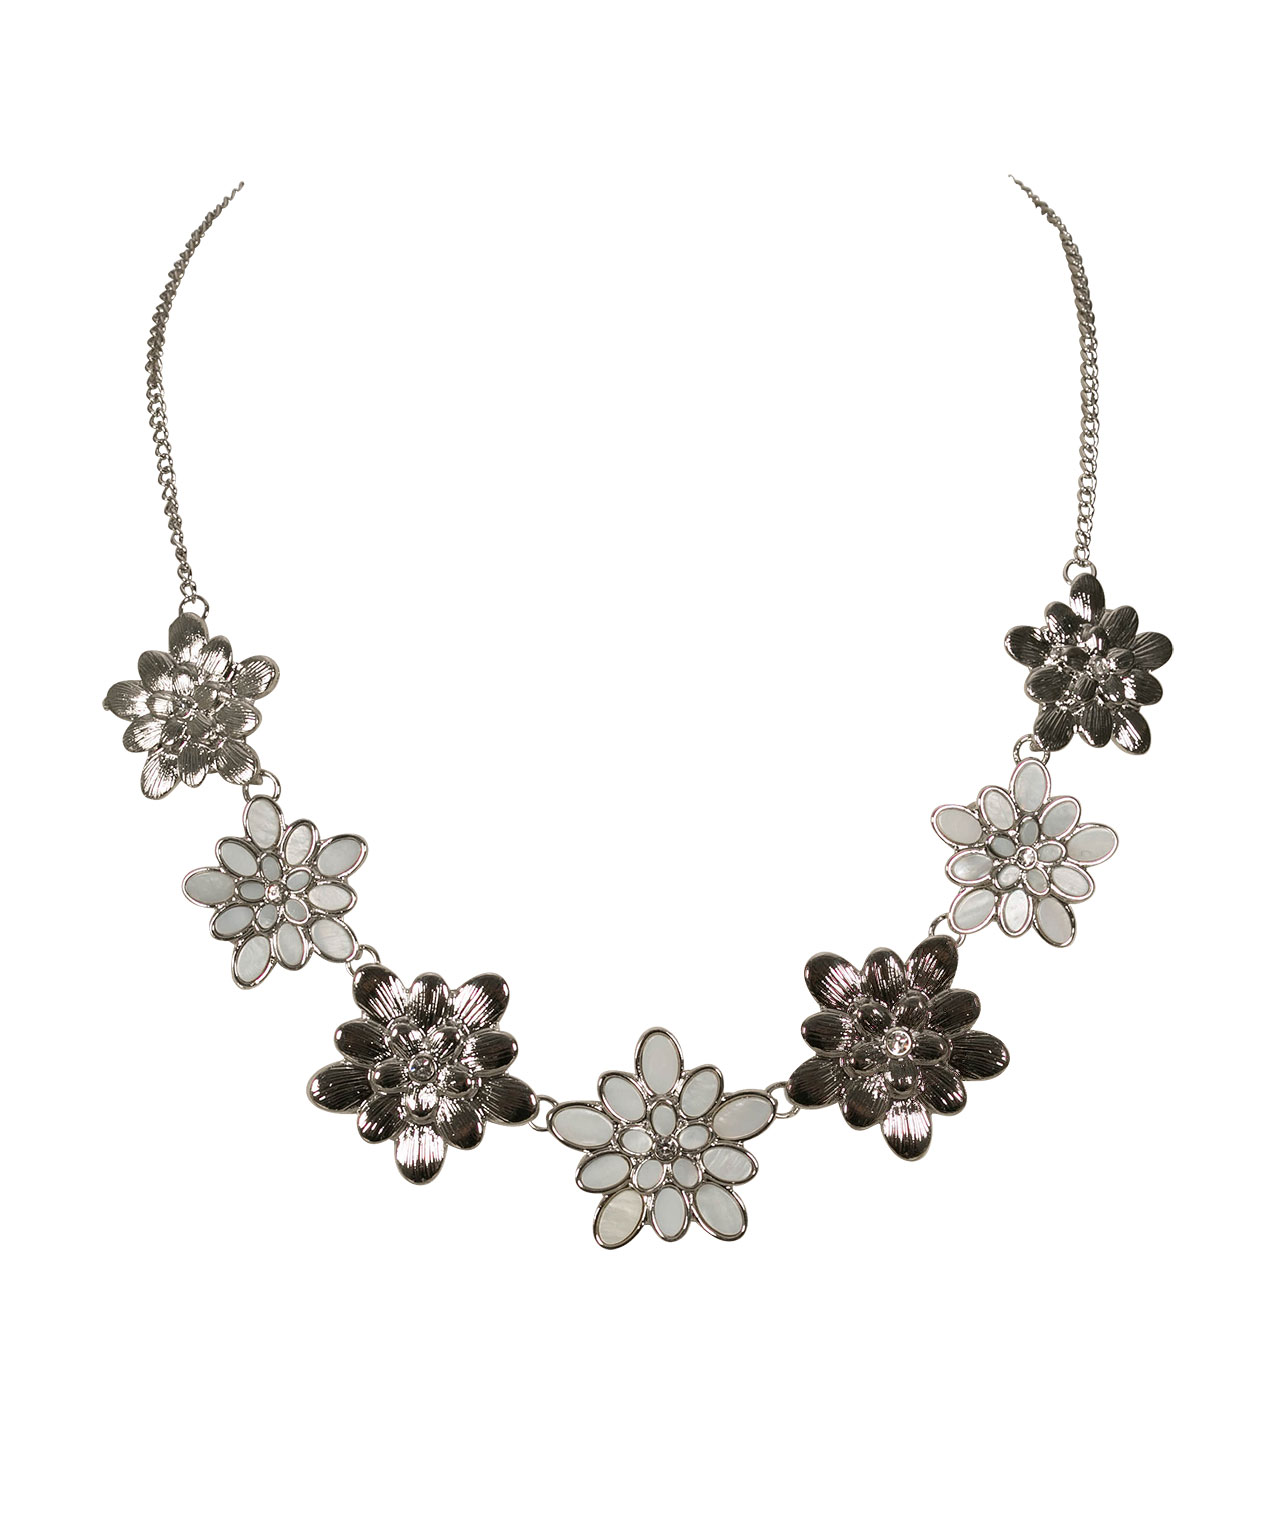 Stationed Flower Statement Necklace Rickis